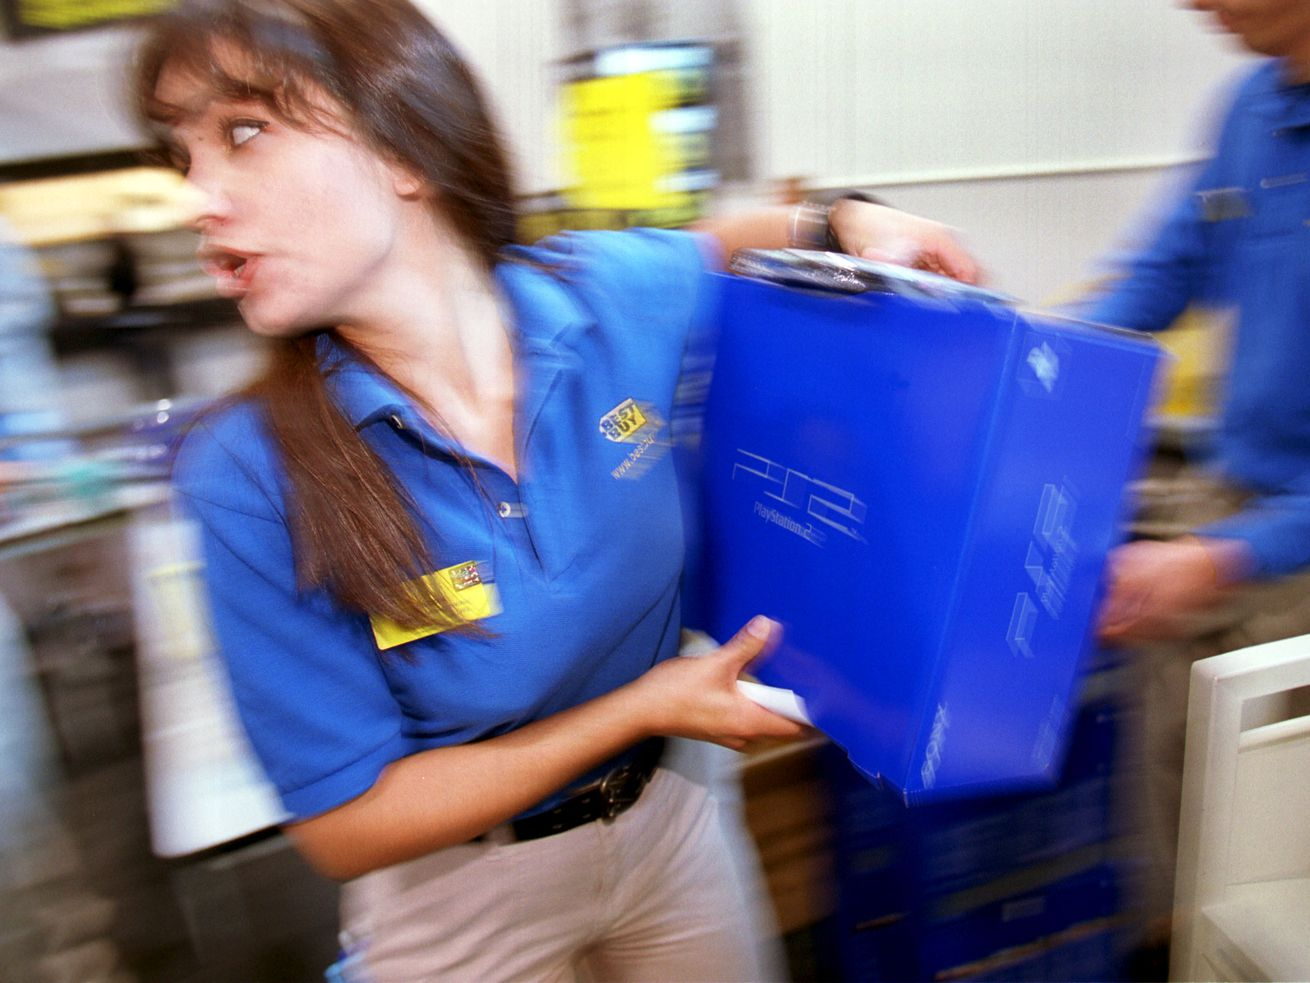 A saleswoman carries a boxed Sony Playstation through a Best Buy store.